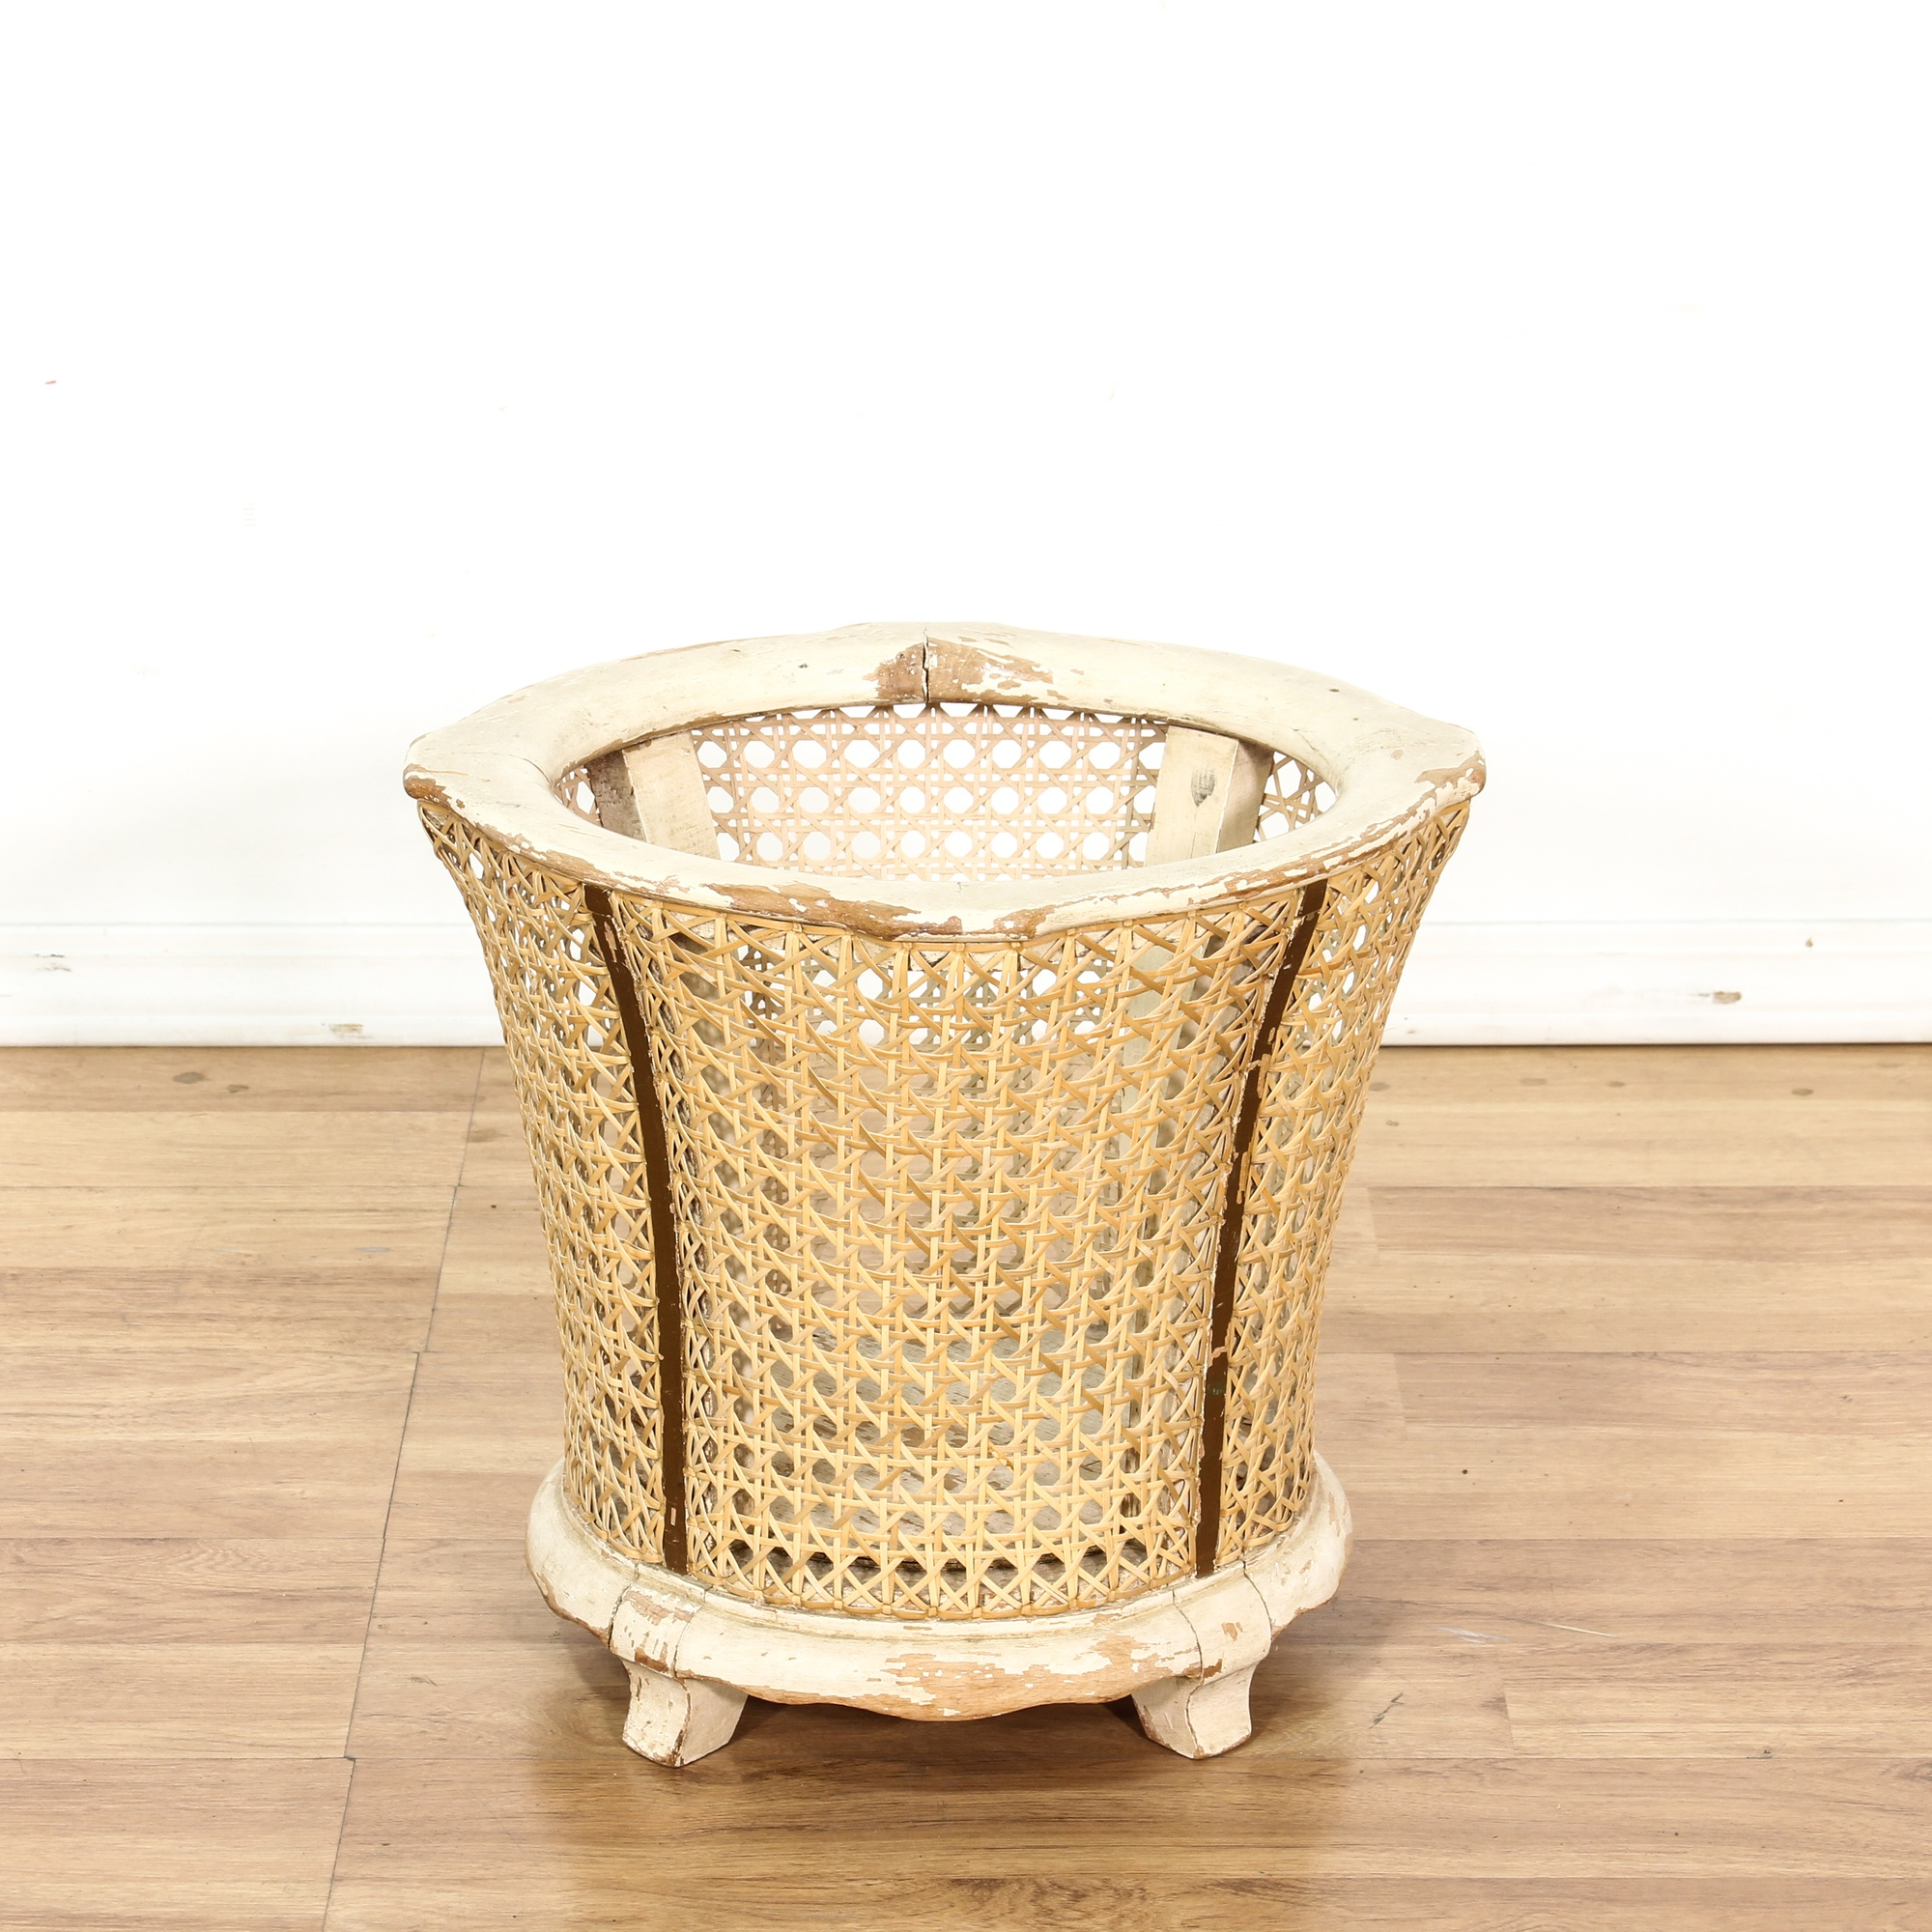 Shabby Chic Waste Baskets Cane White Shabby Chic Waste Bin Trash Can Loveseat Vintage